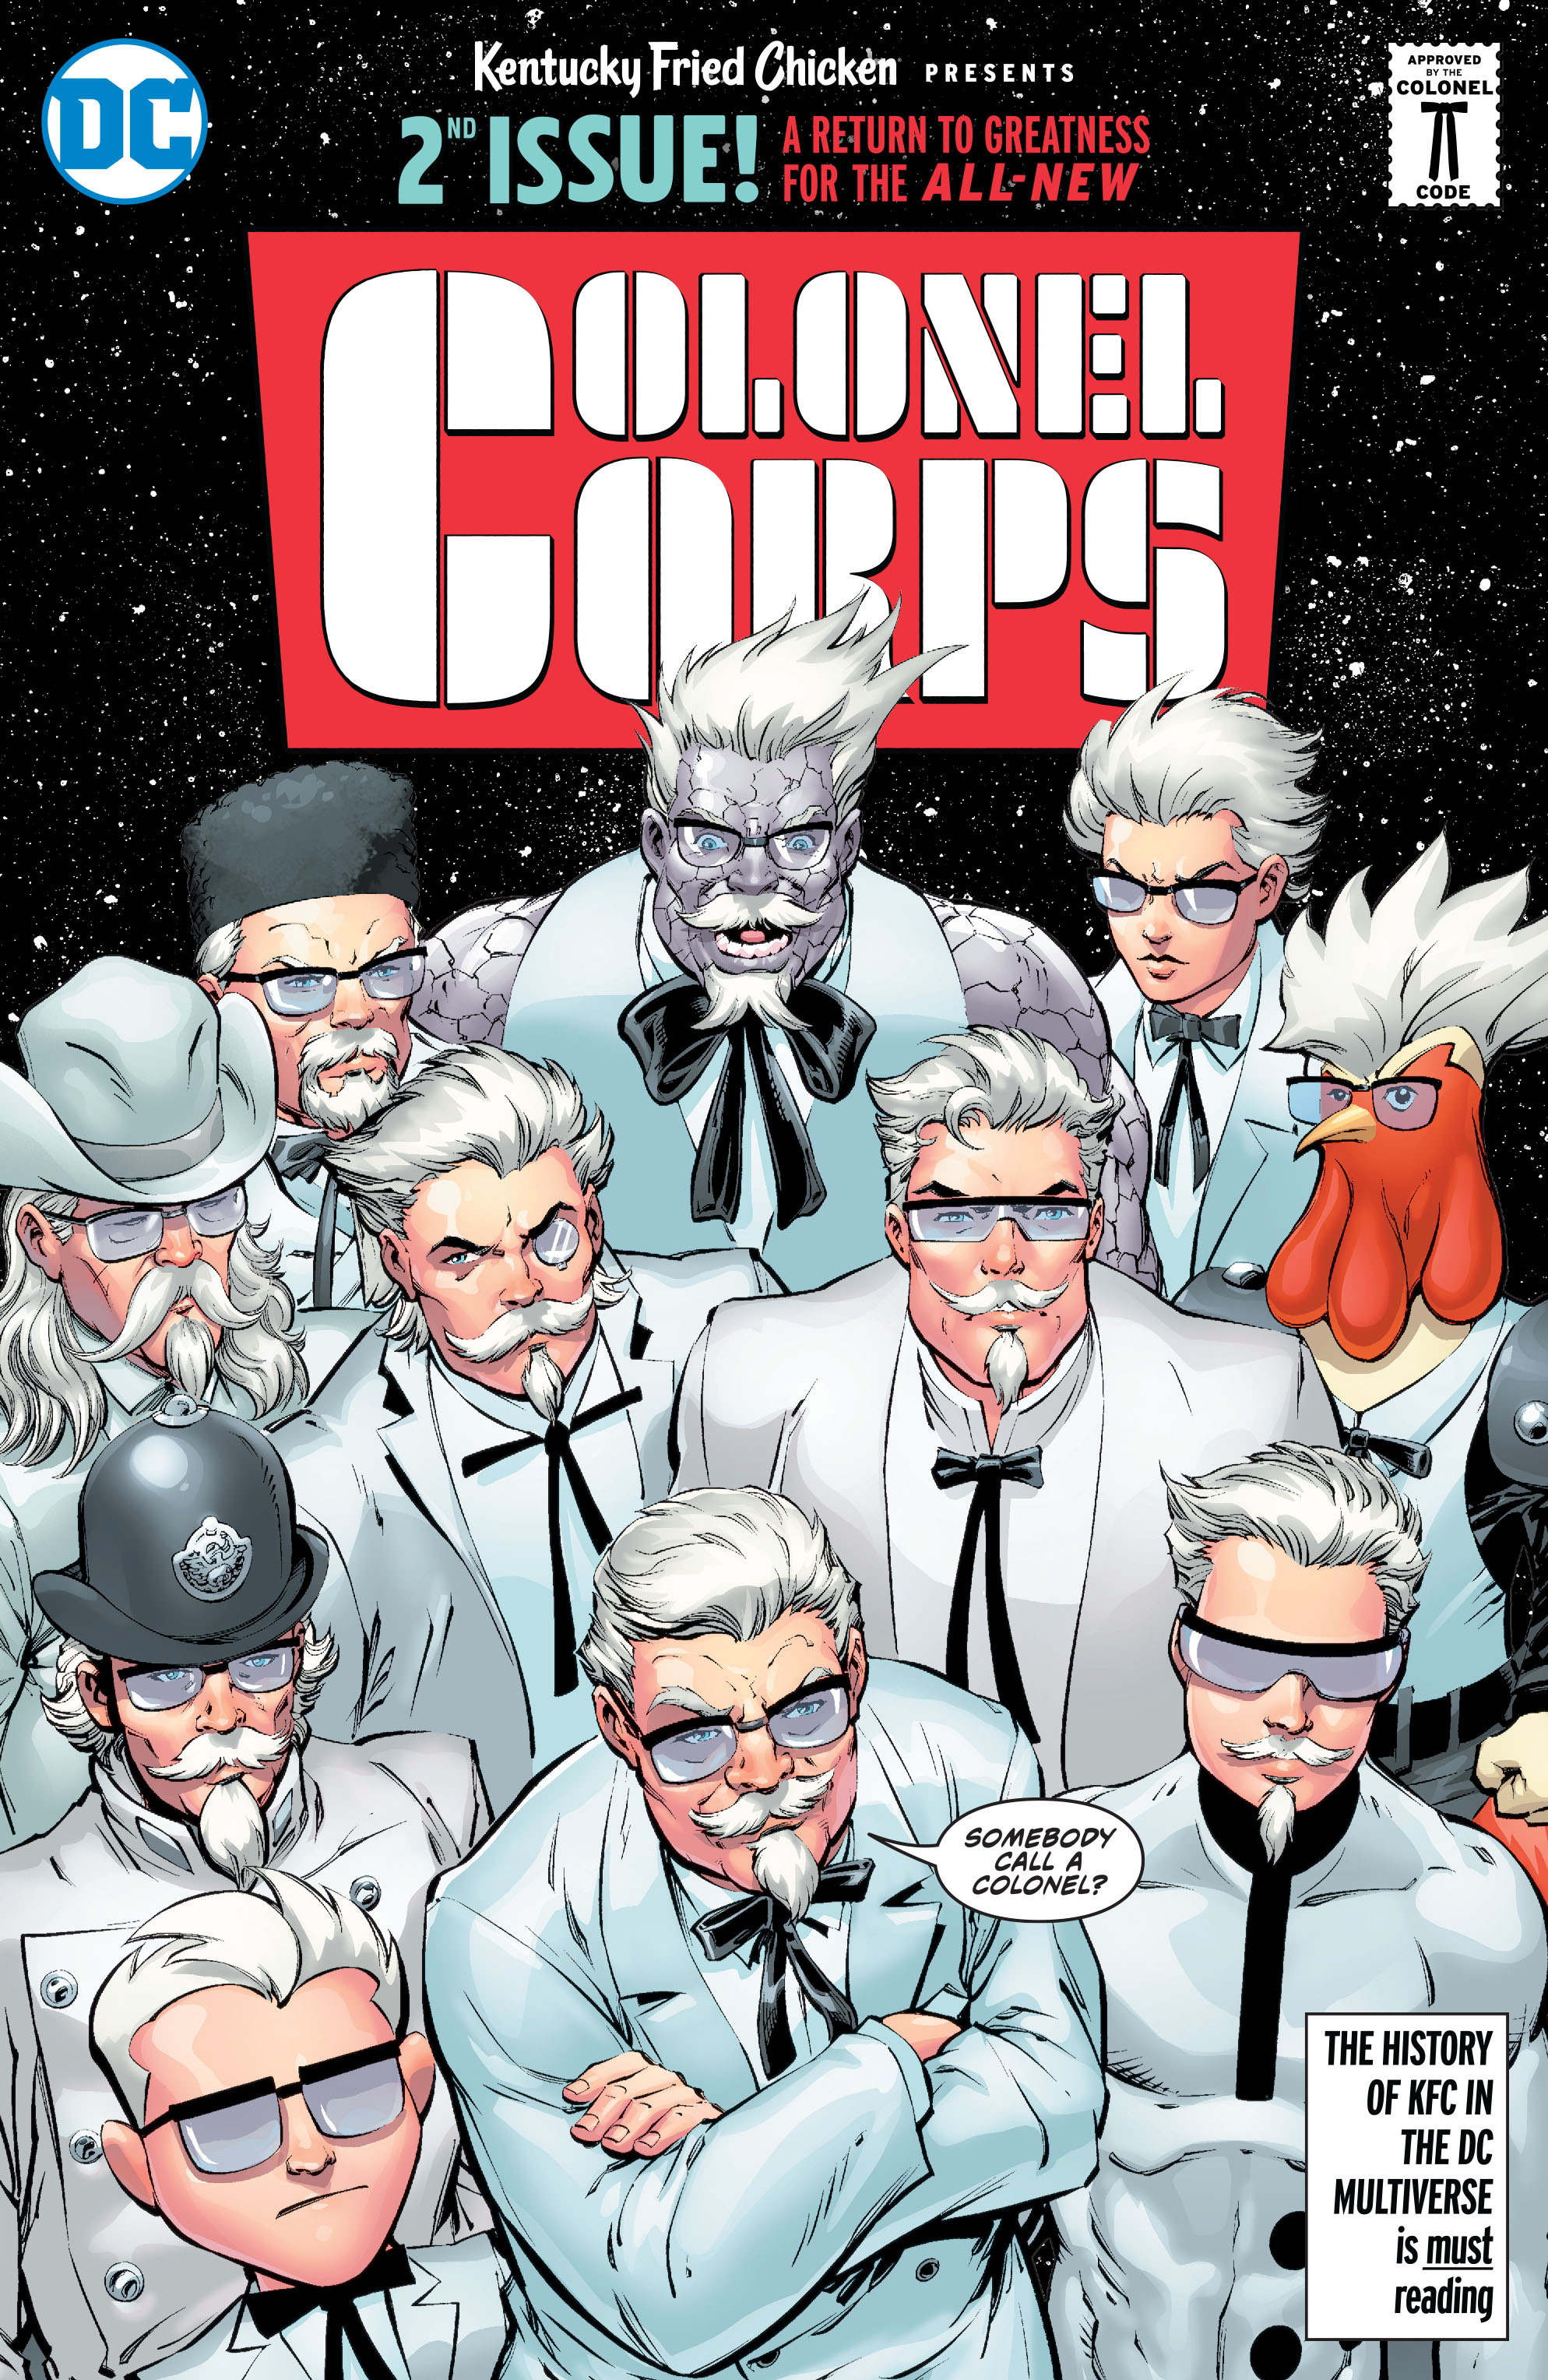 KFC: Crisis of Infinite Colonels Vol 1 1